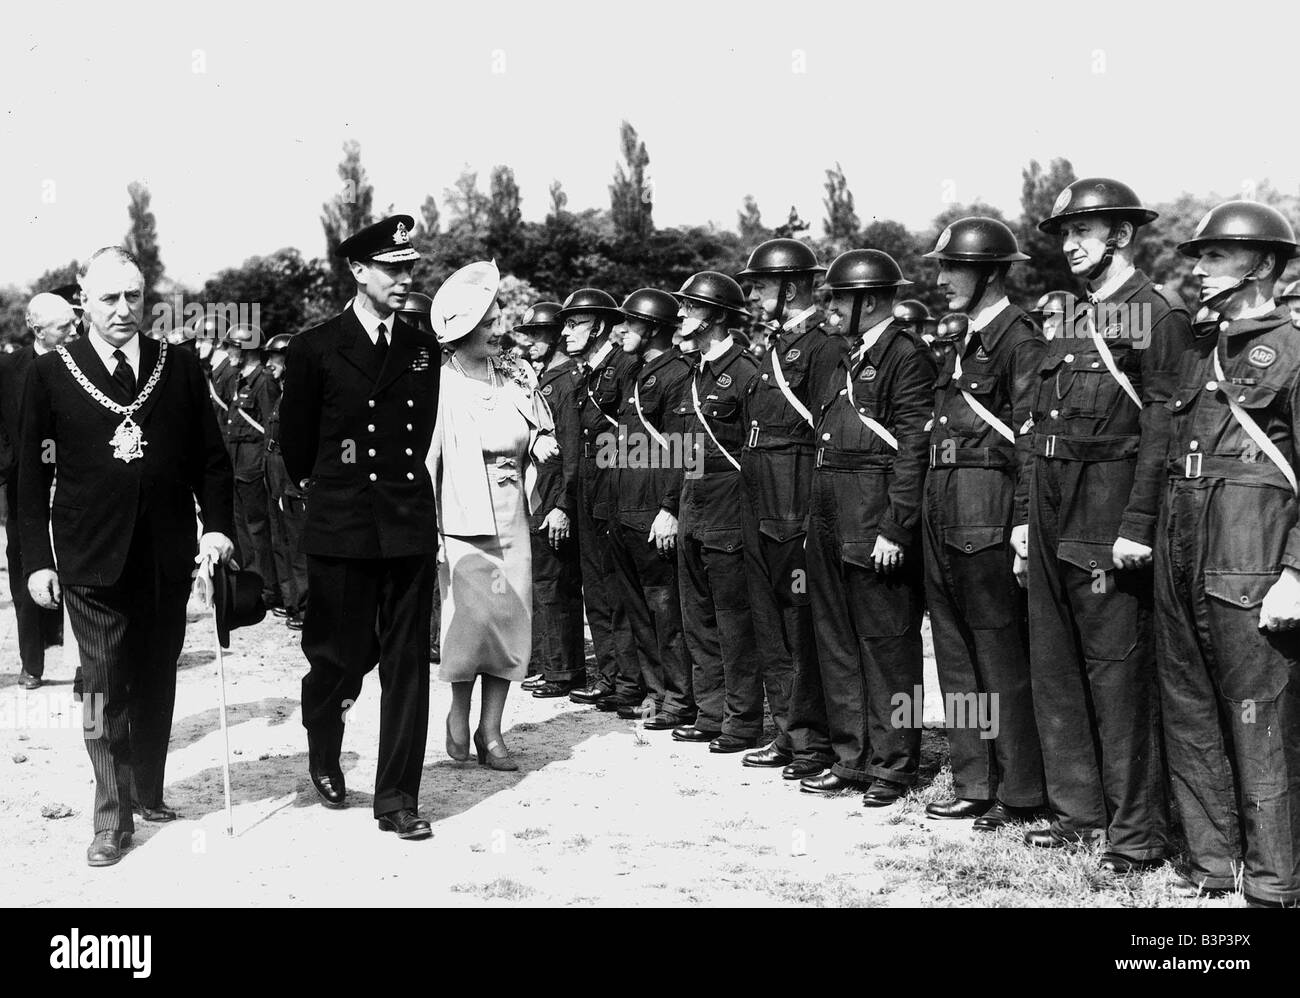 King George VI and Queen Elizabeth Queen Mother Visiting ARP Units during WW2 II 1940 s - Stock Image